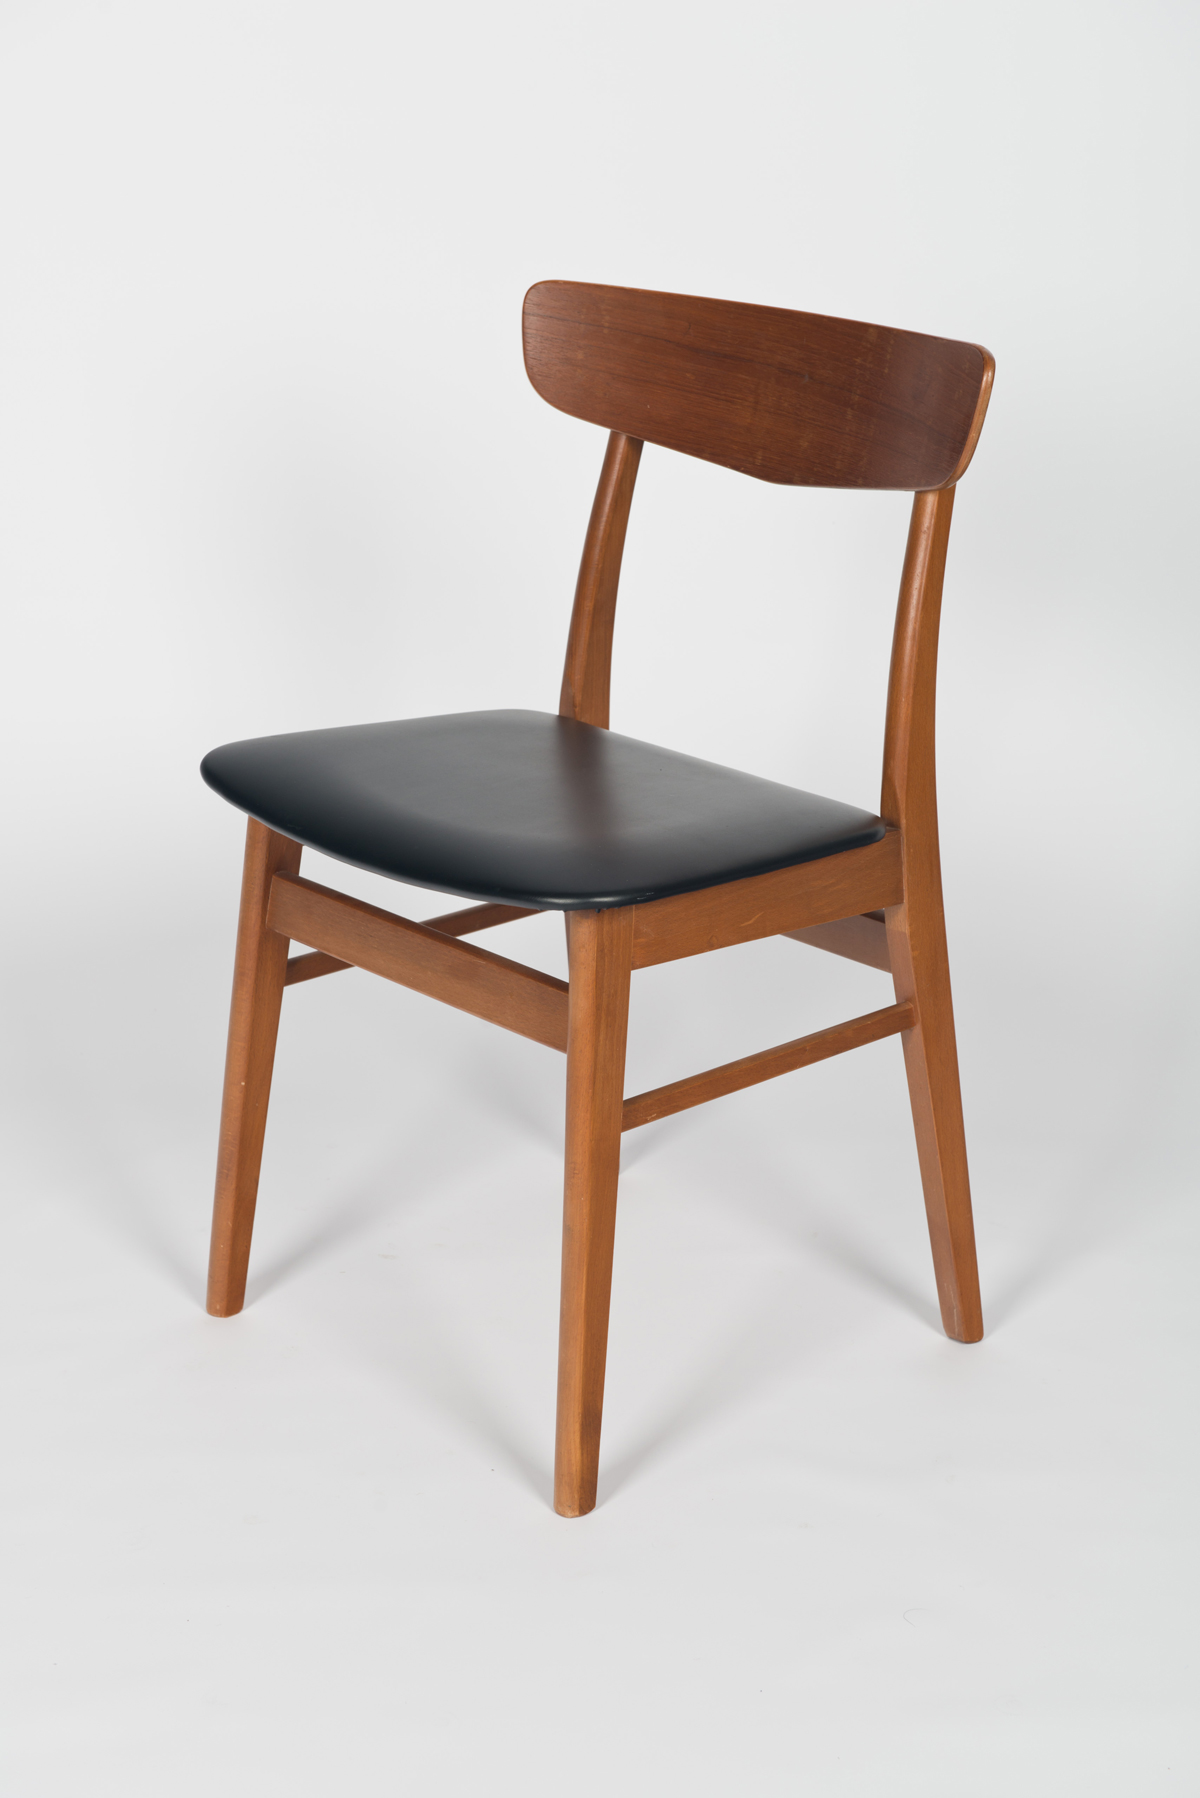 Danish Vintage dining chair made by Findahls - Bo Butik